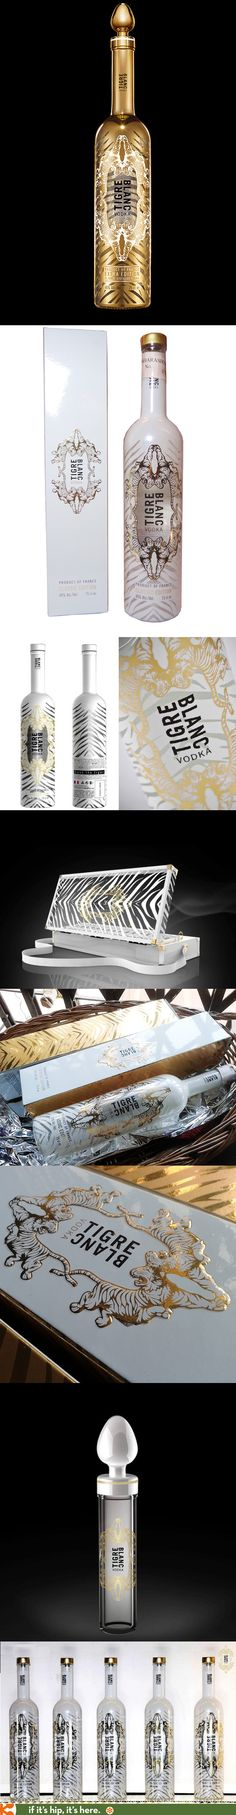 Tigre Blanc Luxury Vodka (Classic and Extra Editions) bottles and packaging.